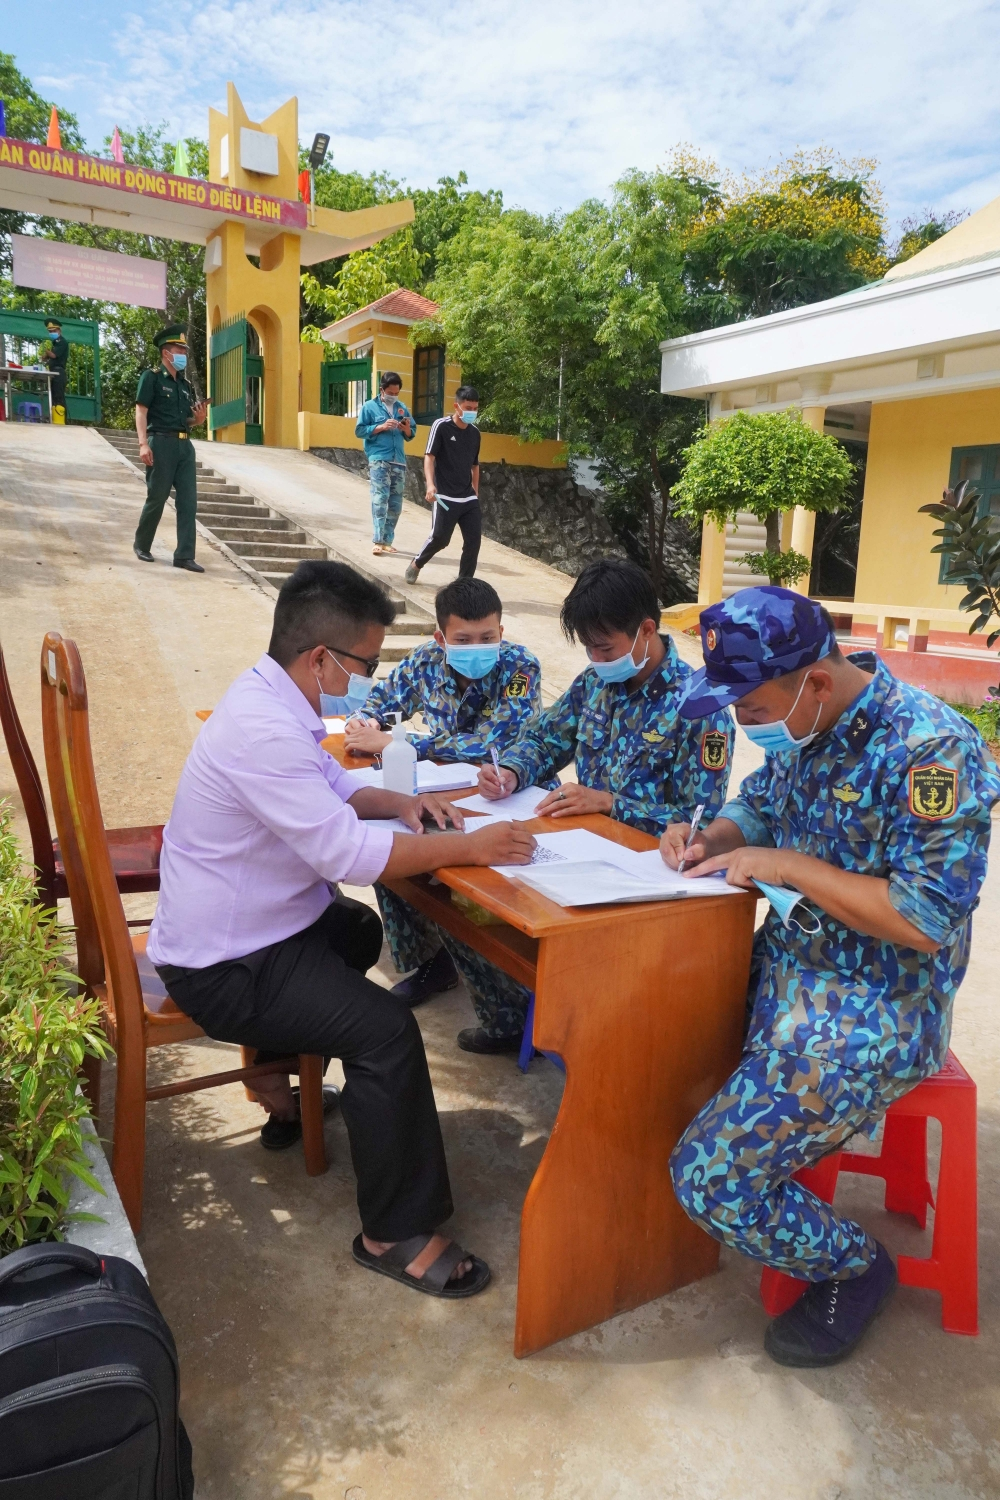 Ca Mau: Voters in Hon Khoai, Hon Chuoi eager for early election